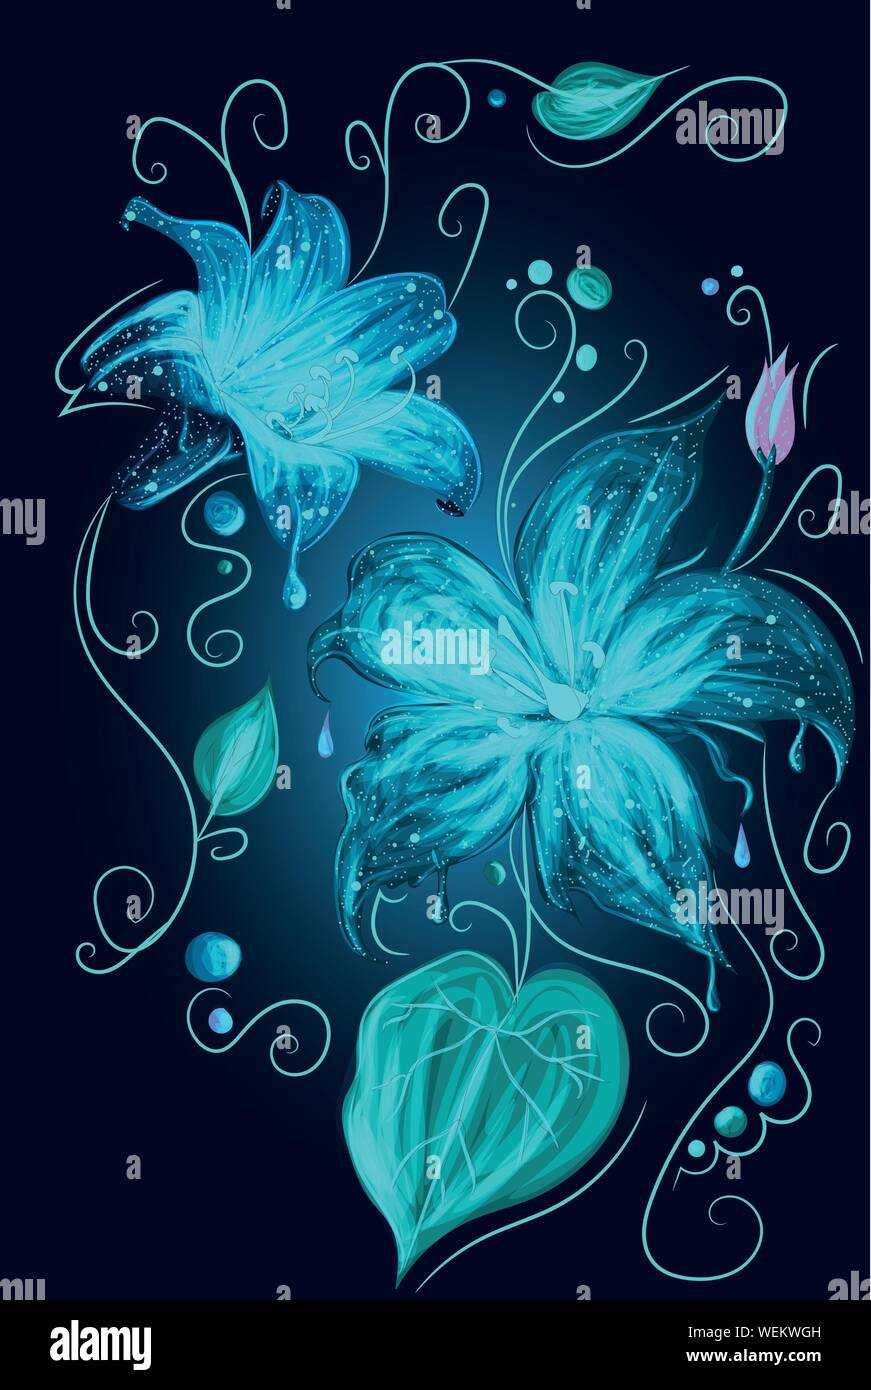 Magic Fantasy Neon Blue Flowers Beauty Of Nature Glowing Full